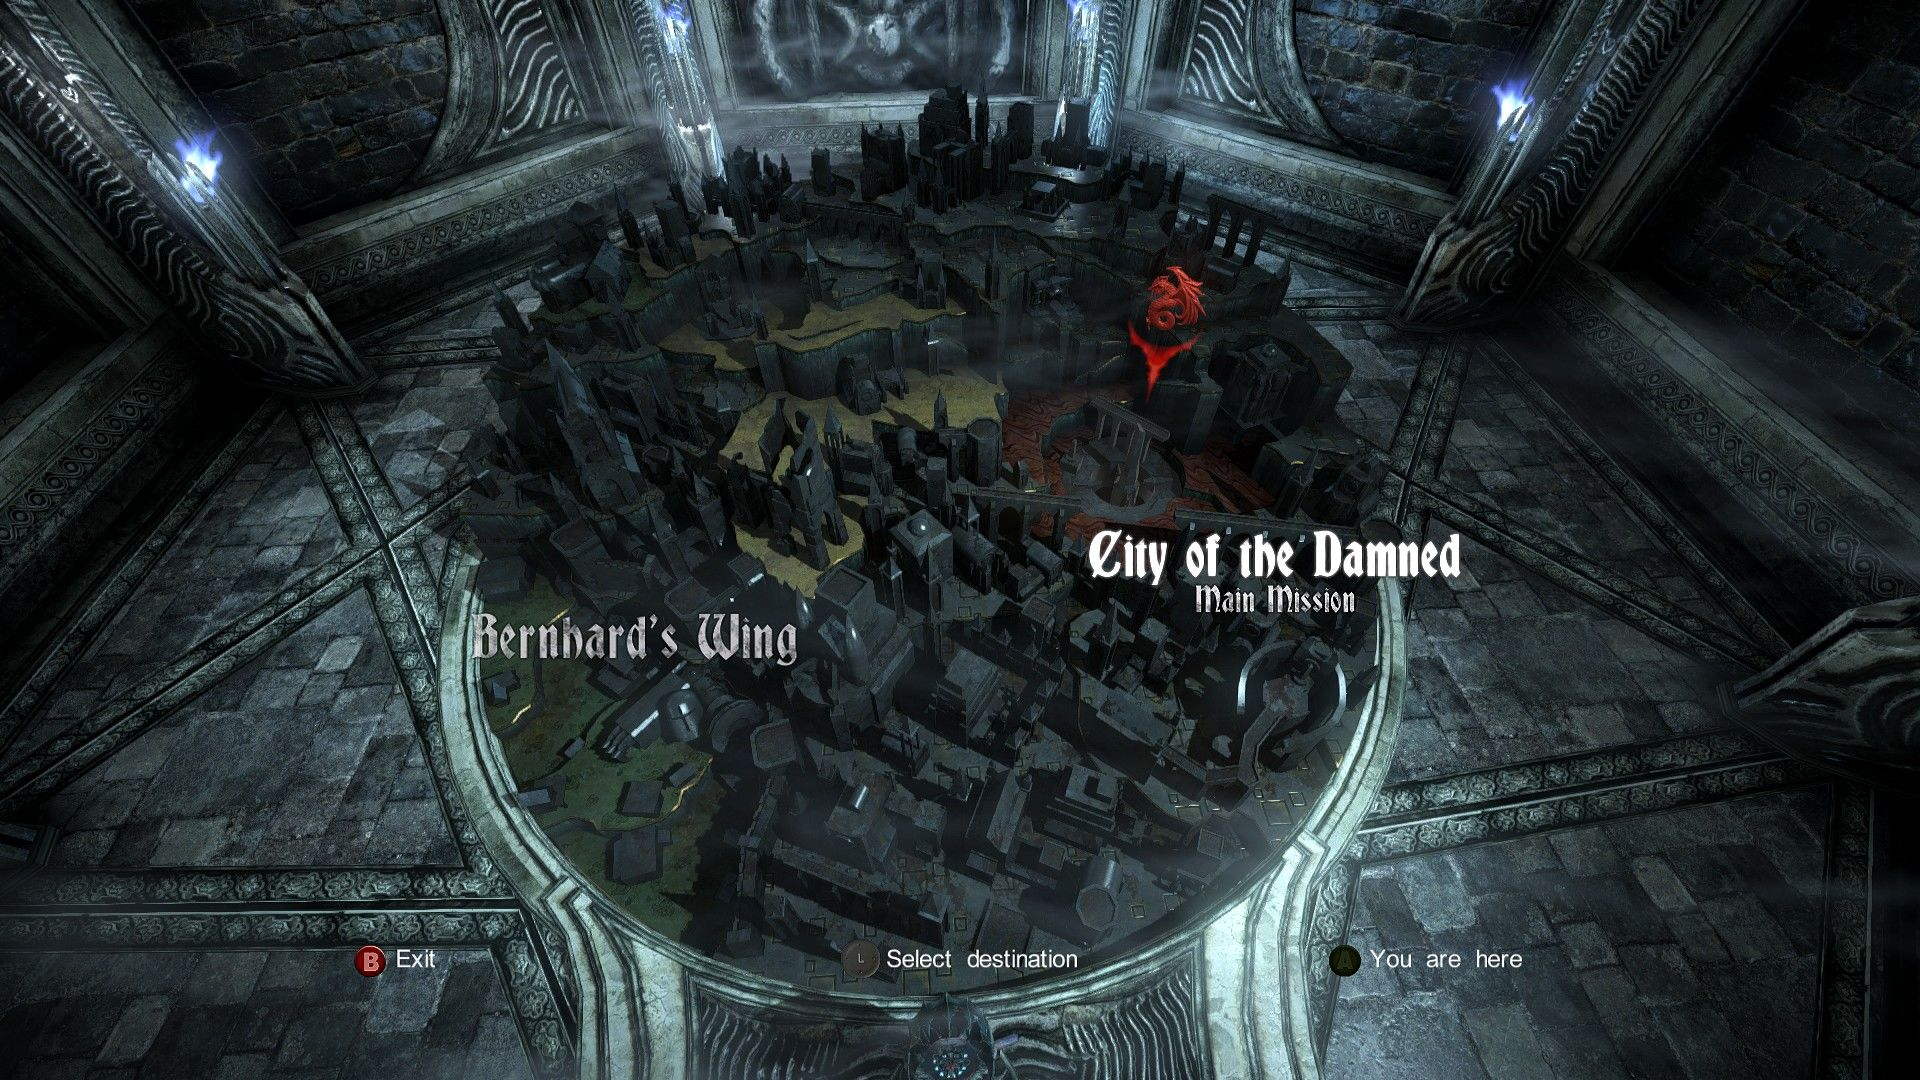 Download free pc game castlevania lords of shadow ultimate full.